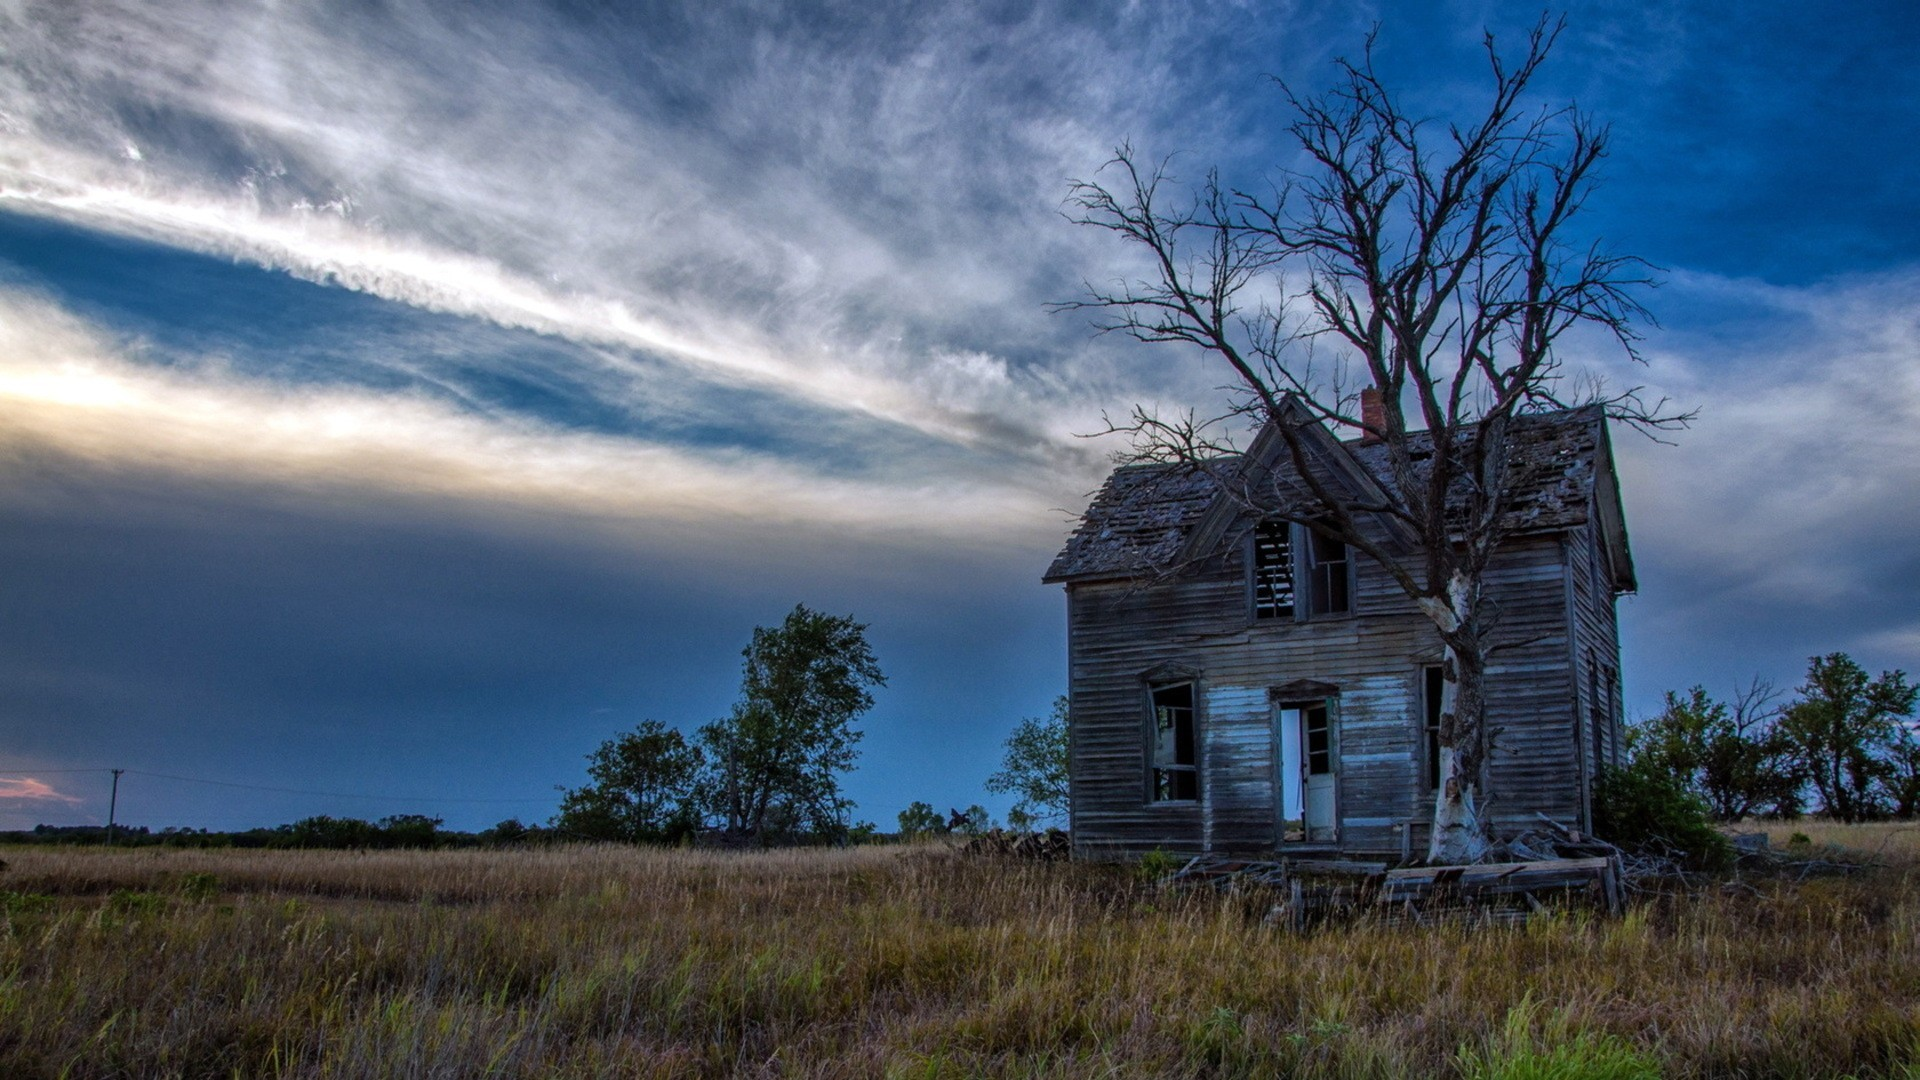 Old abandoned house wallpaper 600 pc en for Classic house wallpaper